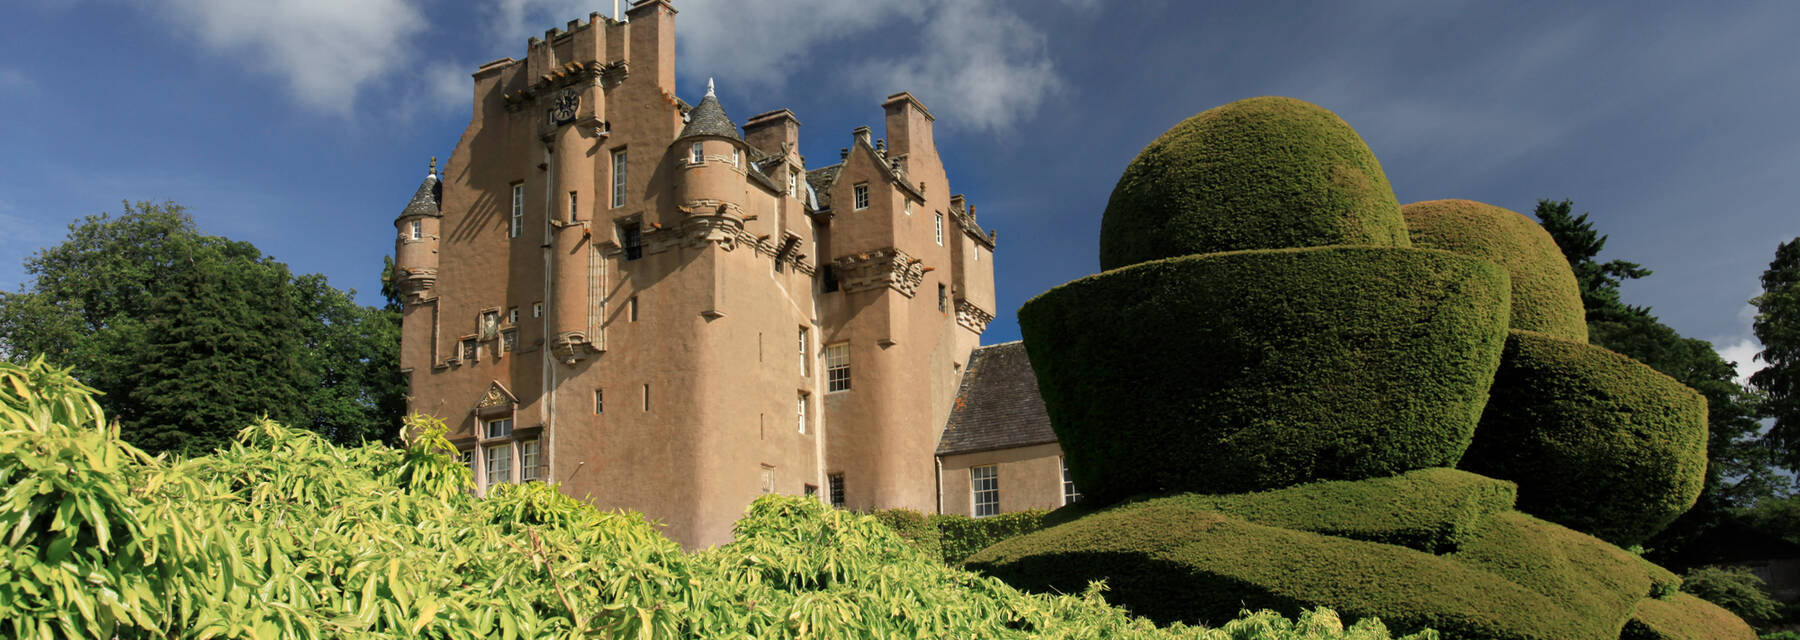 Crathes Castle in the summer